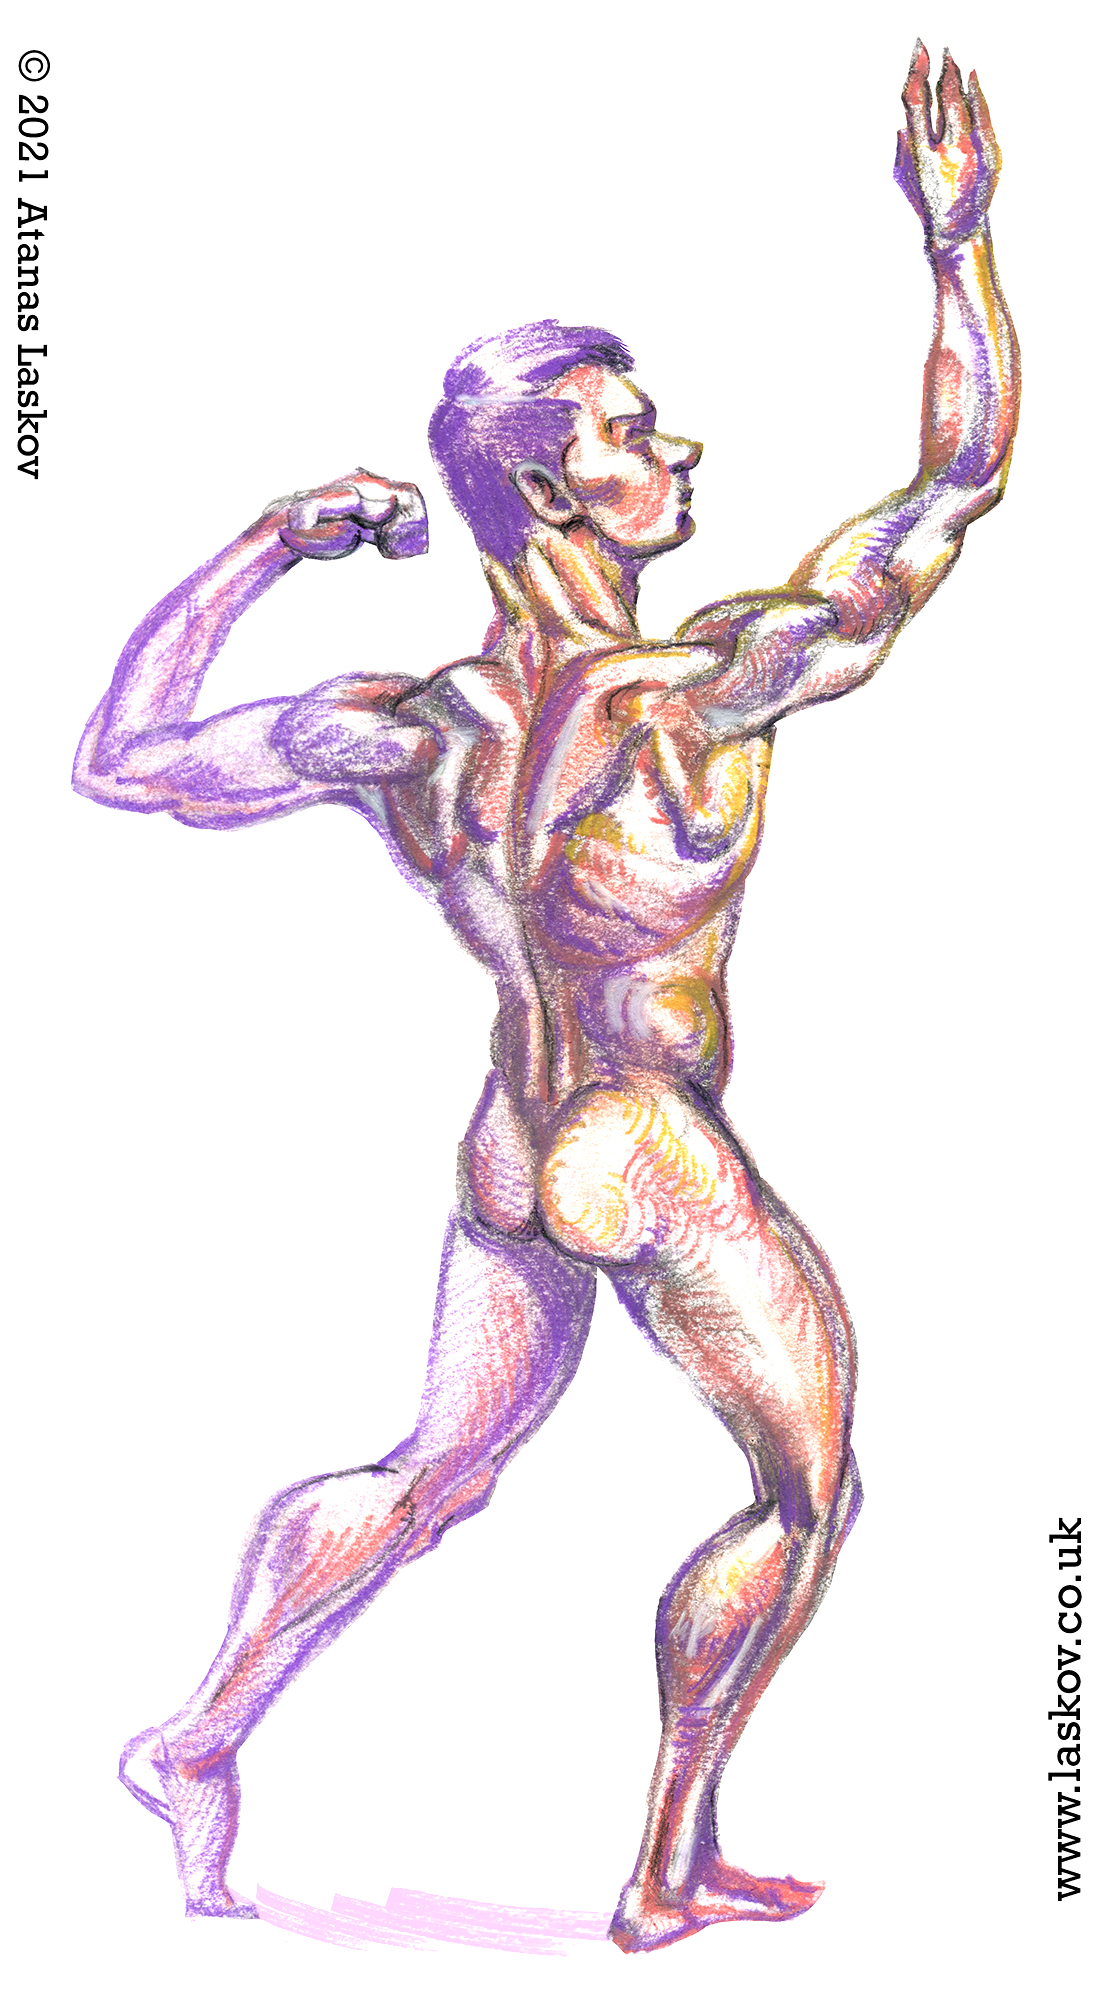 Study of the muscles of the back